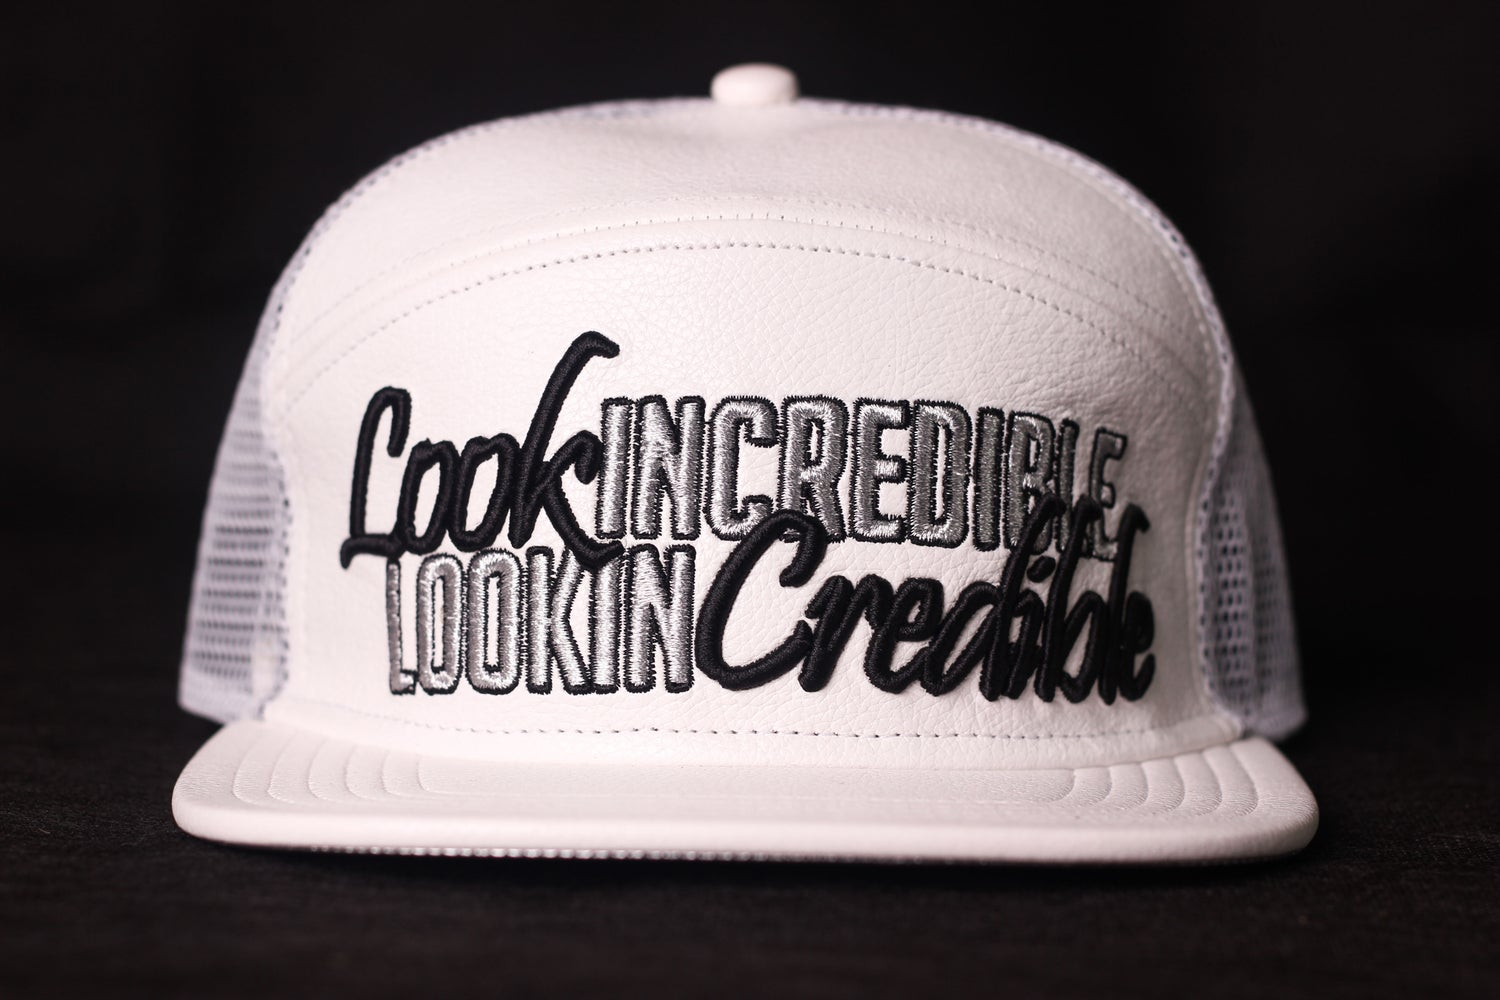 Image of LookinCredible Leather trucker